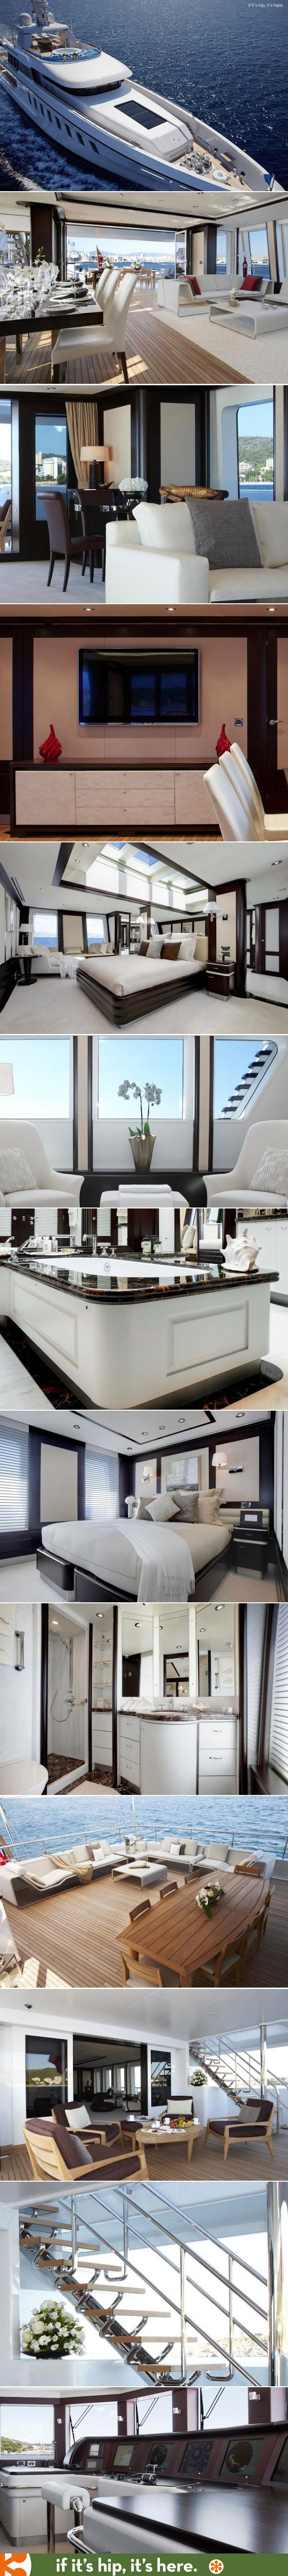 The Helix Yacht and it's incredibly decorated interior.  More at http://www.ifitshipitshere.com/147-foot-luxury-yacht-with-an-incredible-interior-the-helix-yacht-from-feadship/